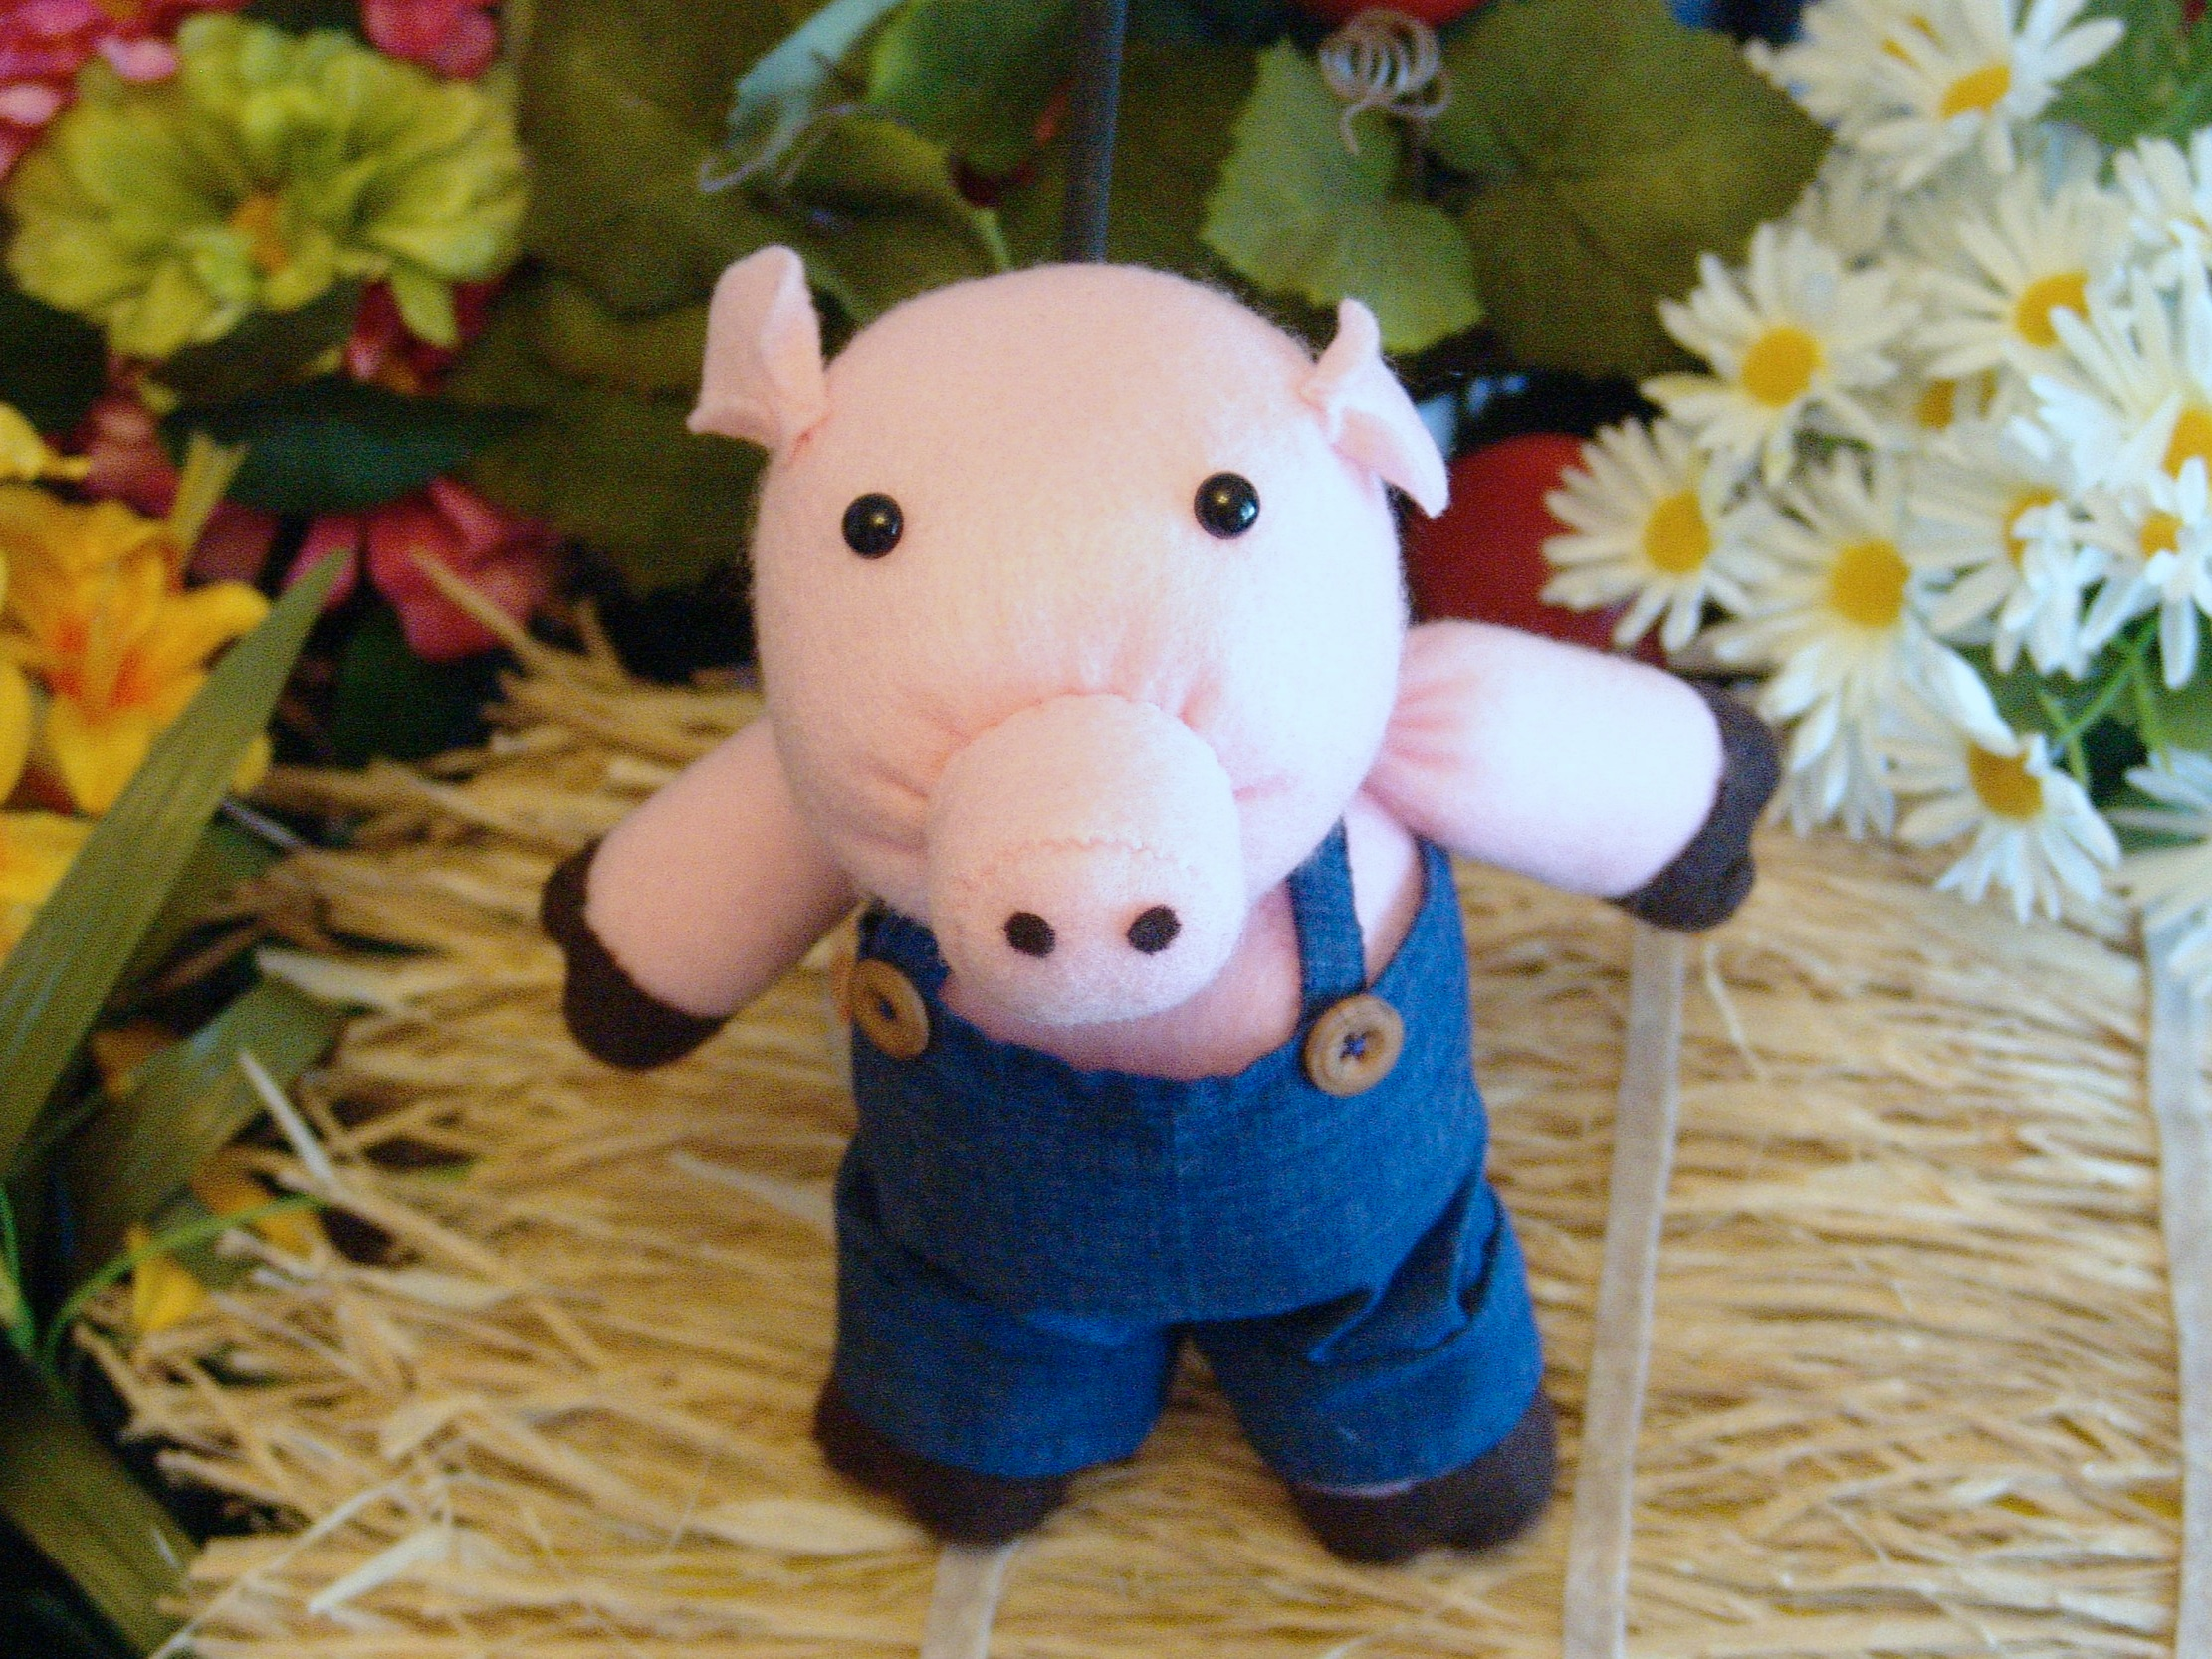 Three Little Pigs Puppet Show - WonderSpark is proud to continue the tradition of non-moving-mouth hand puppets, aka